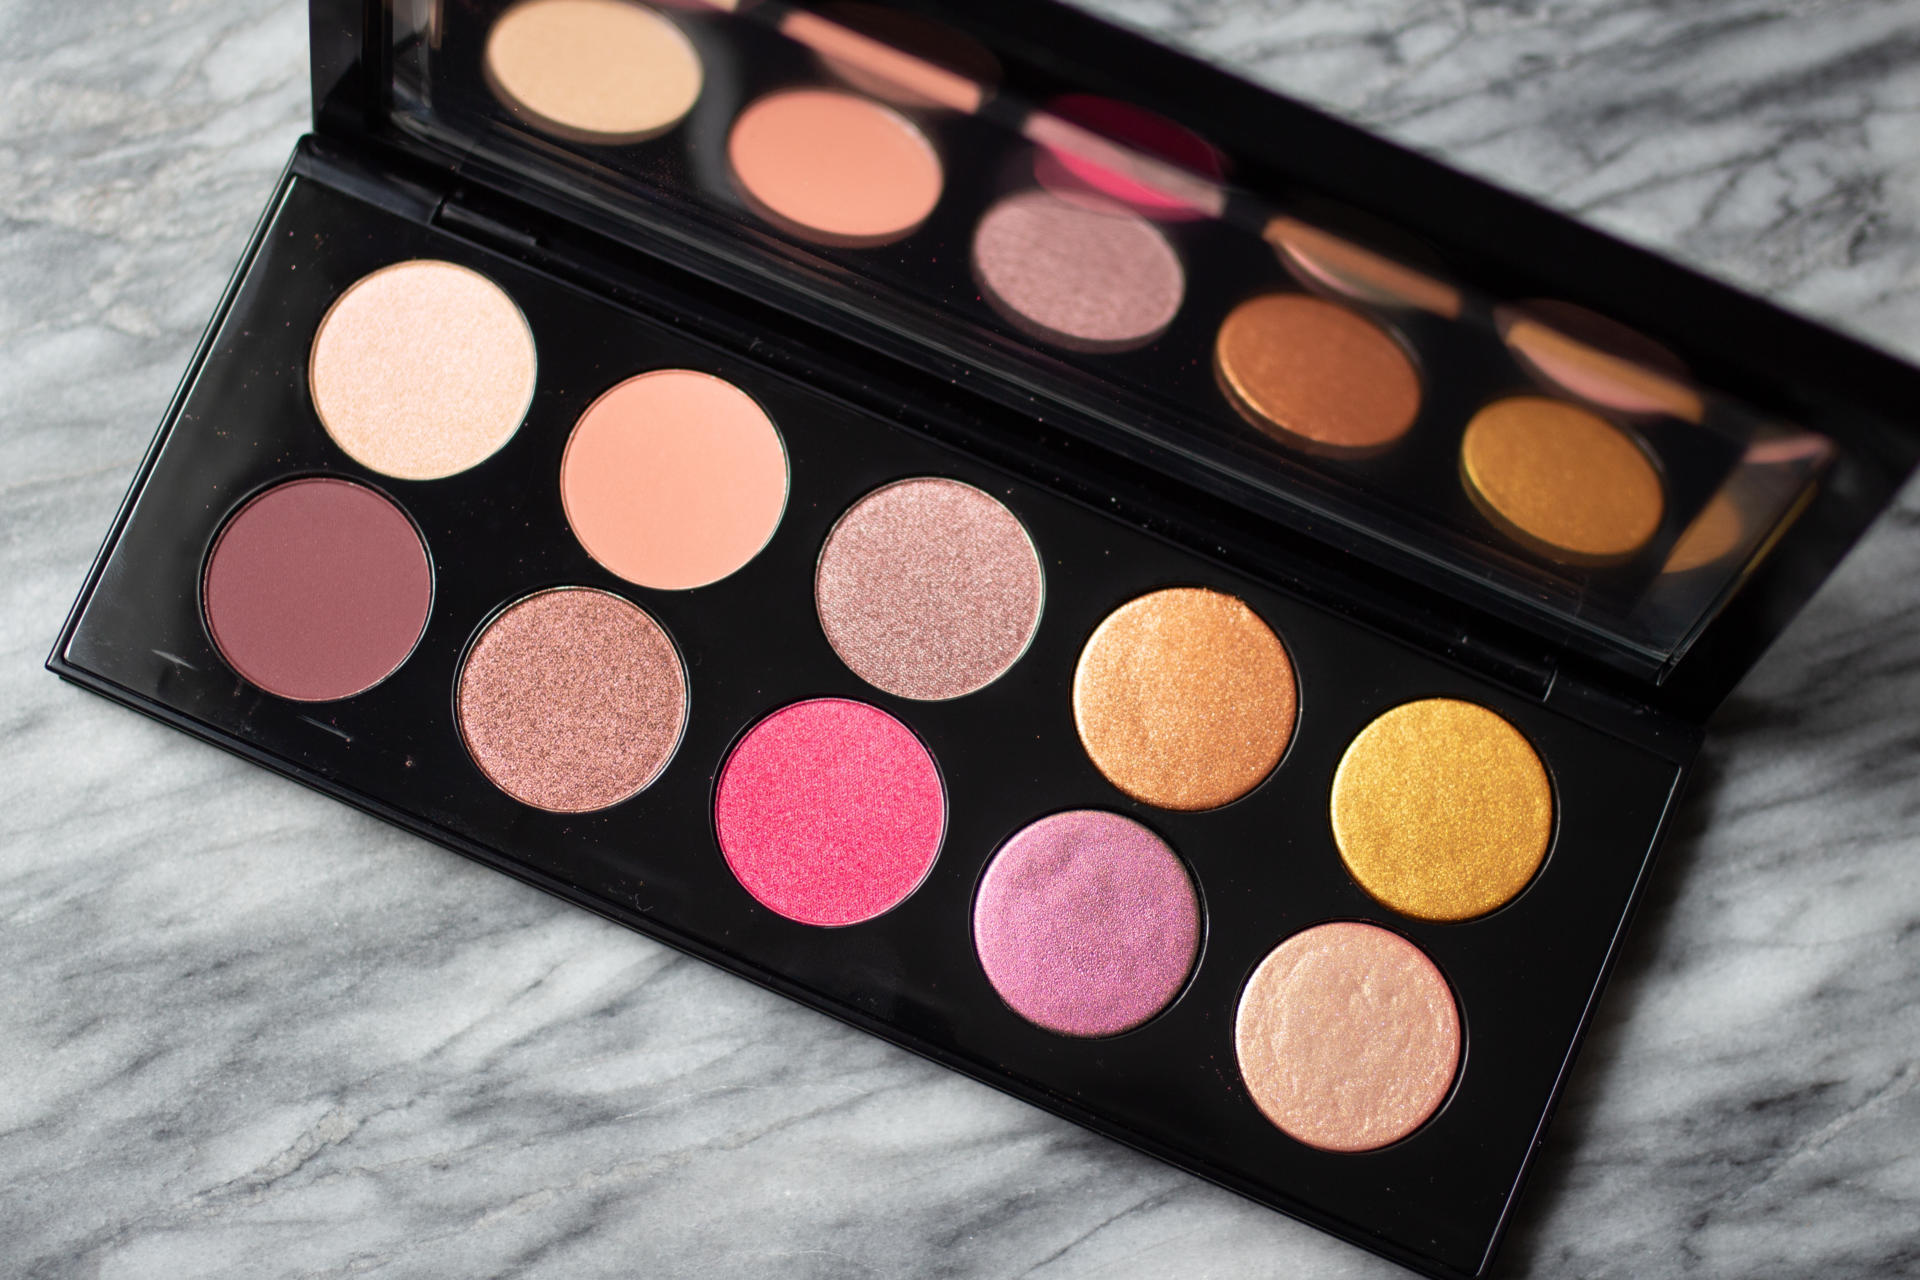 Pat McGrath Divine Rose ll Palette